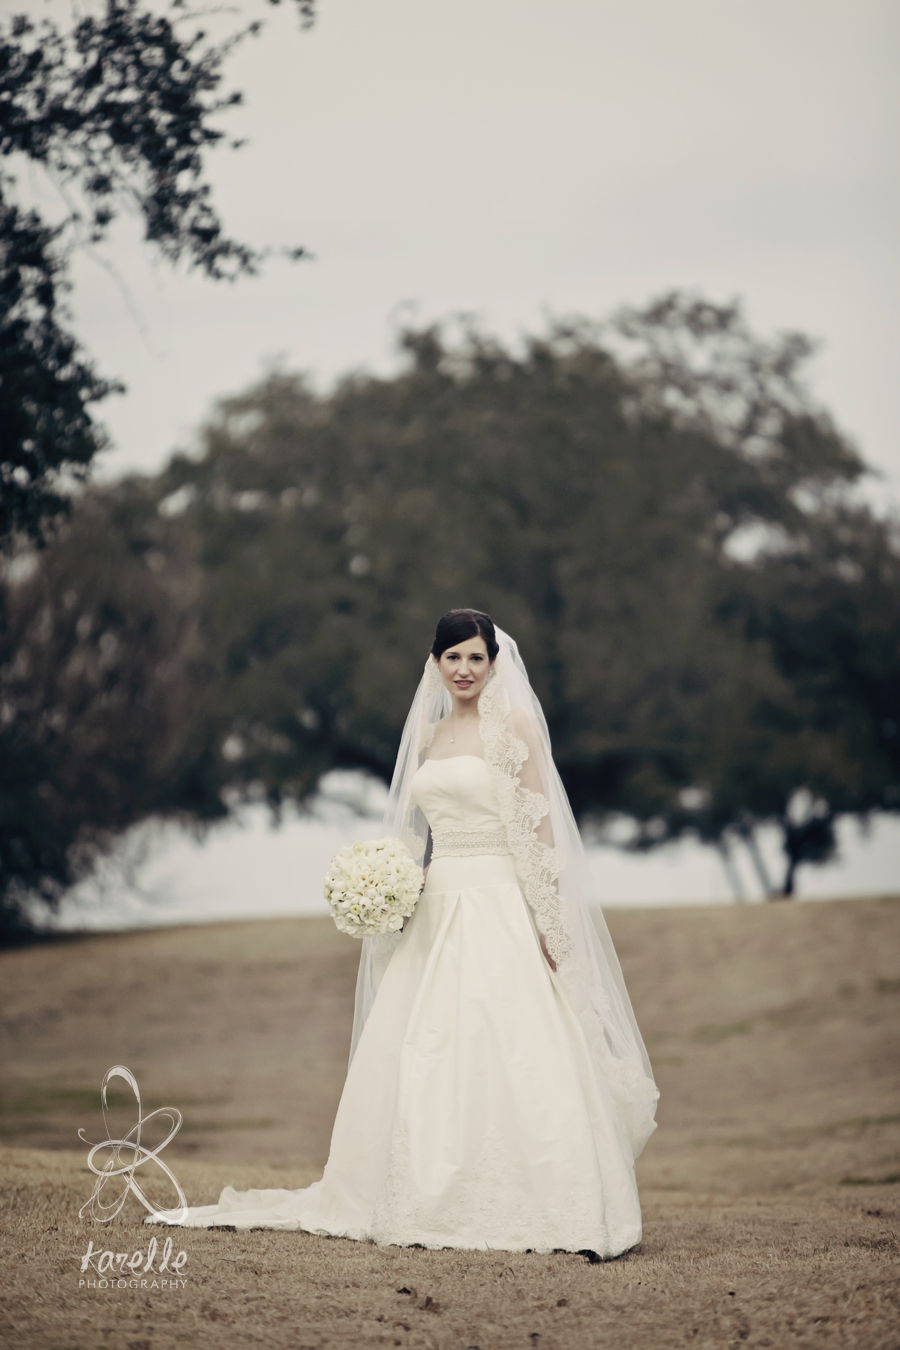 Houston wedding photographer Janna08.jpg